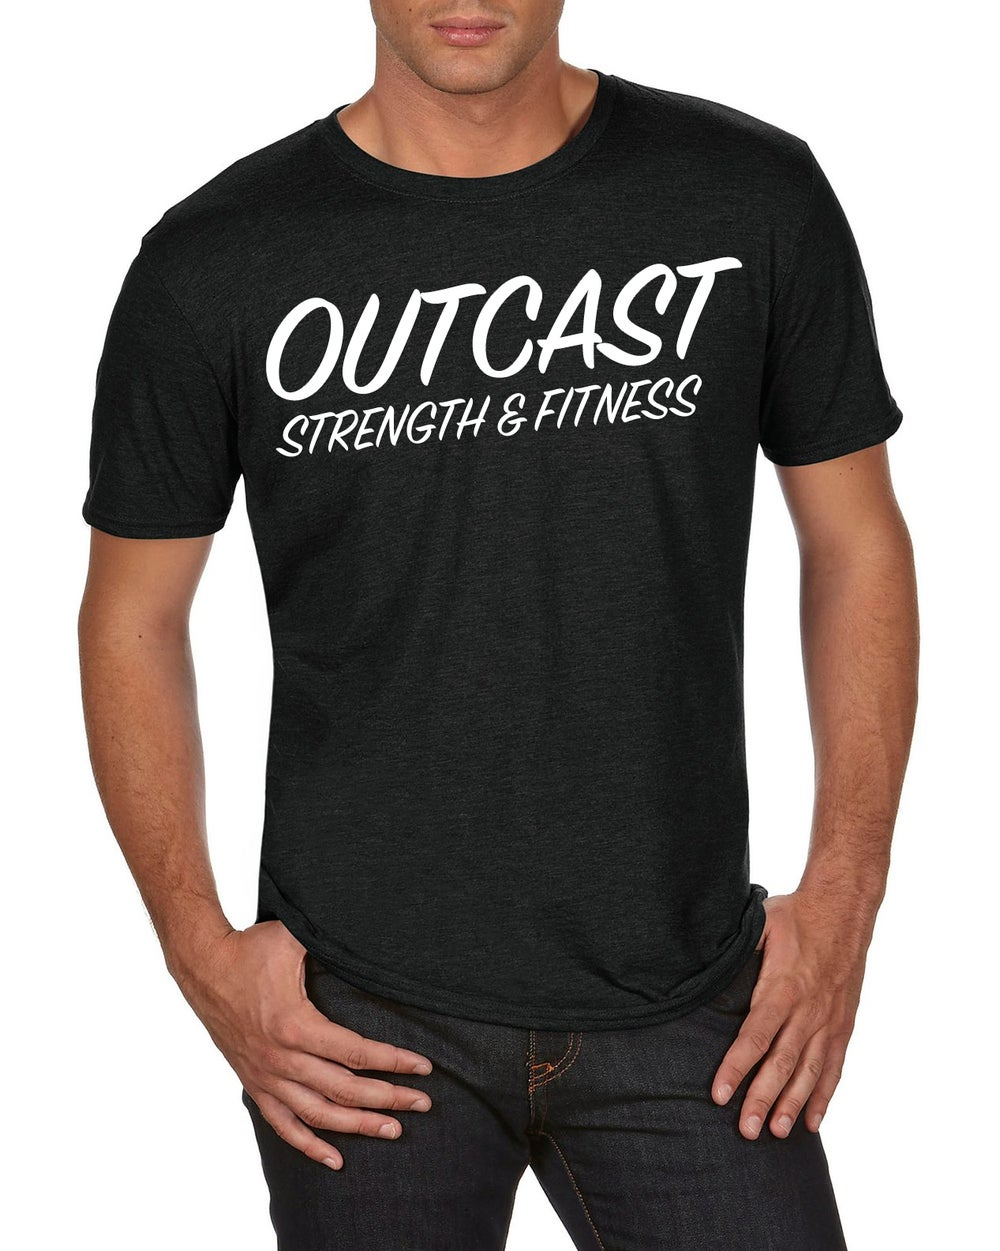 Image of Outcast Crew shirt & mug